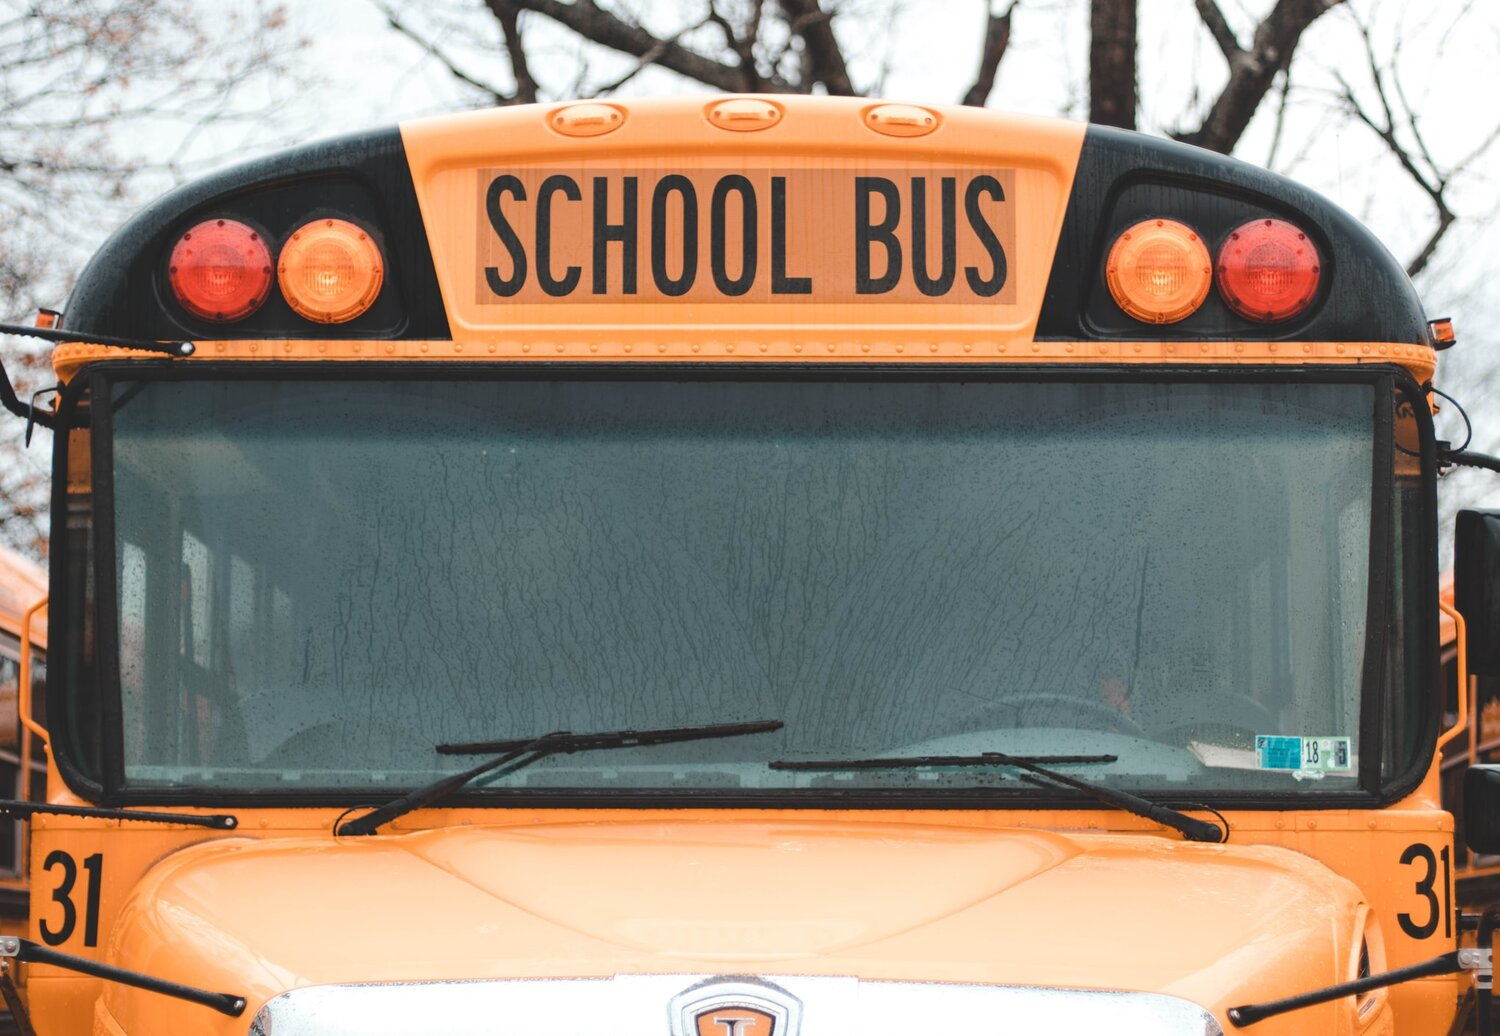 School districts across the U.S. are struggling with a severe bus driver shortage this fall, exacerbated by the COVID-19 pandemic but brought on by lo